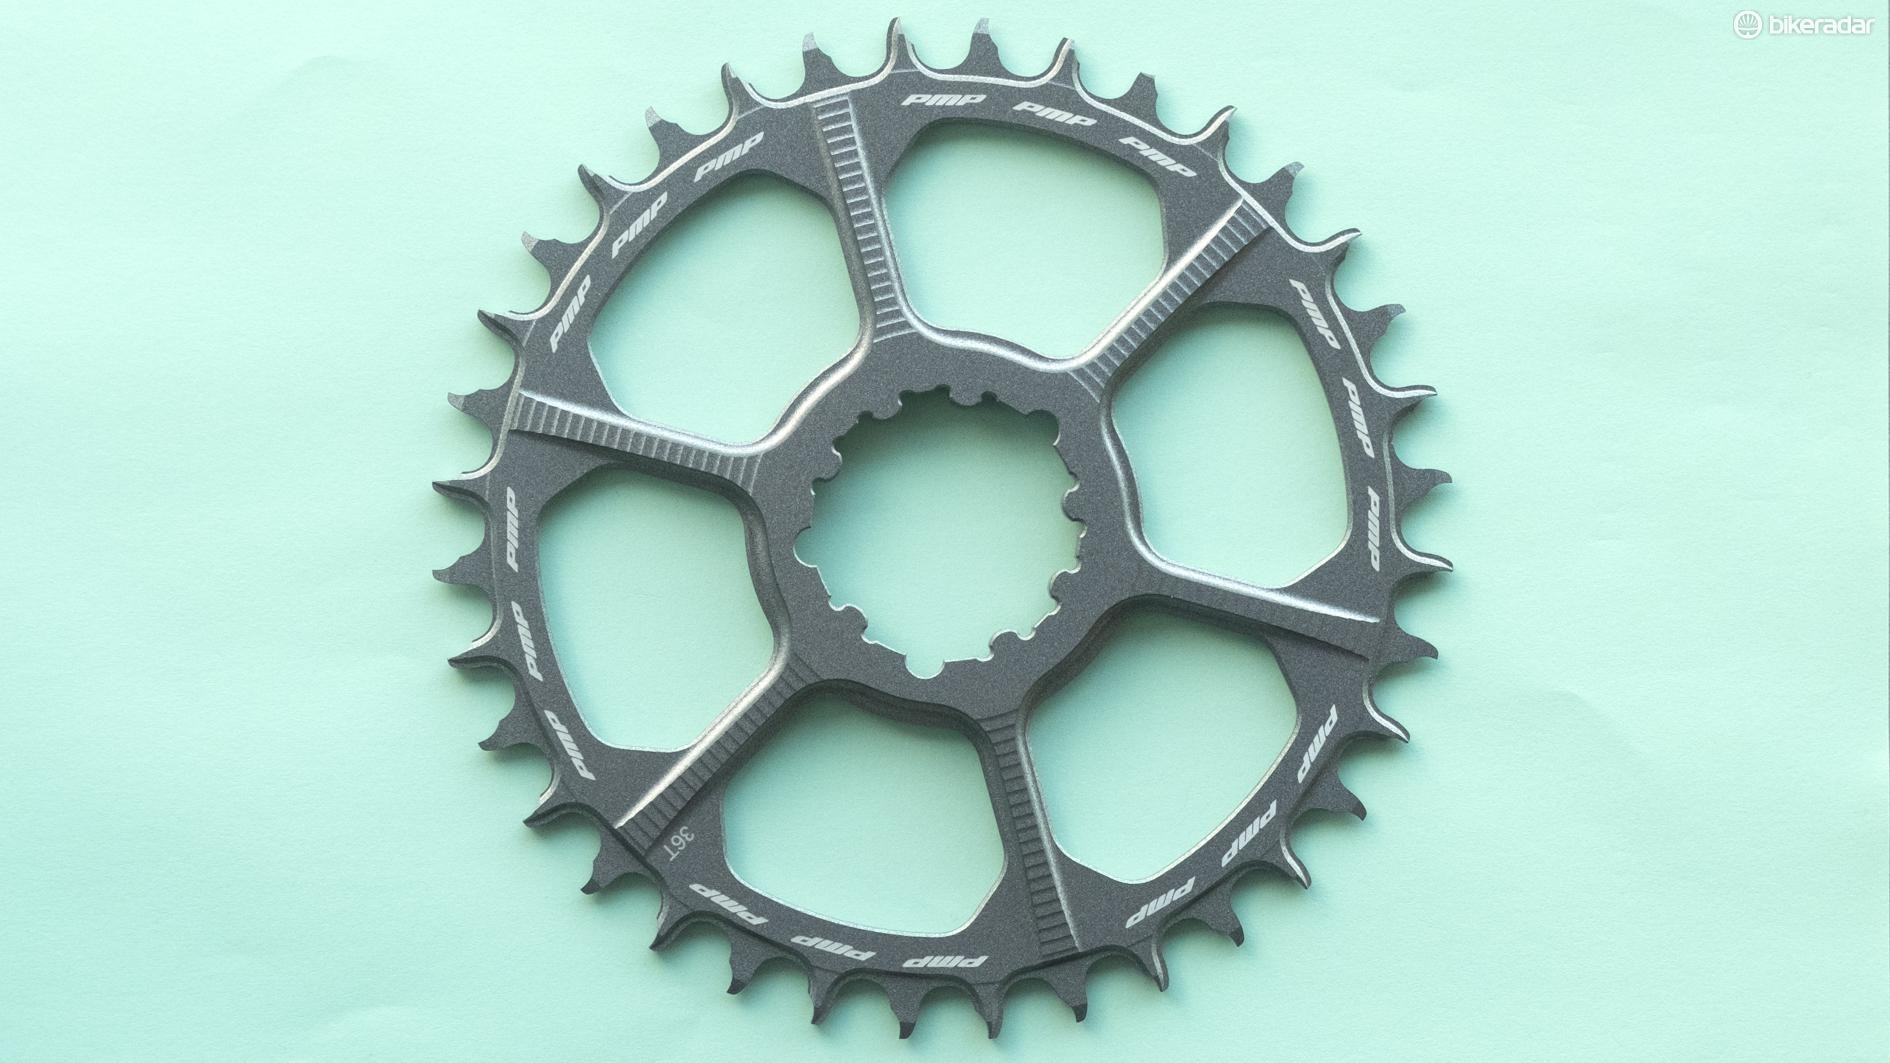 The chainrings have a distinctive hook machined into the leading edge of the teeth